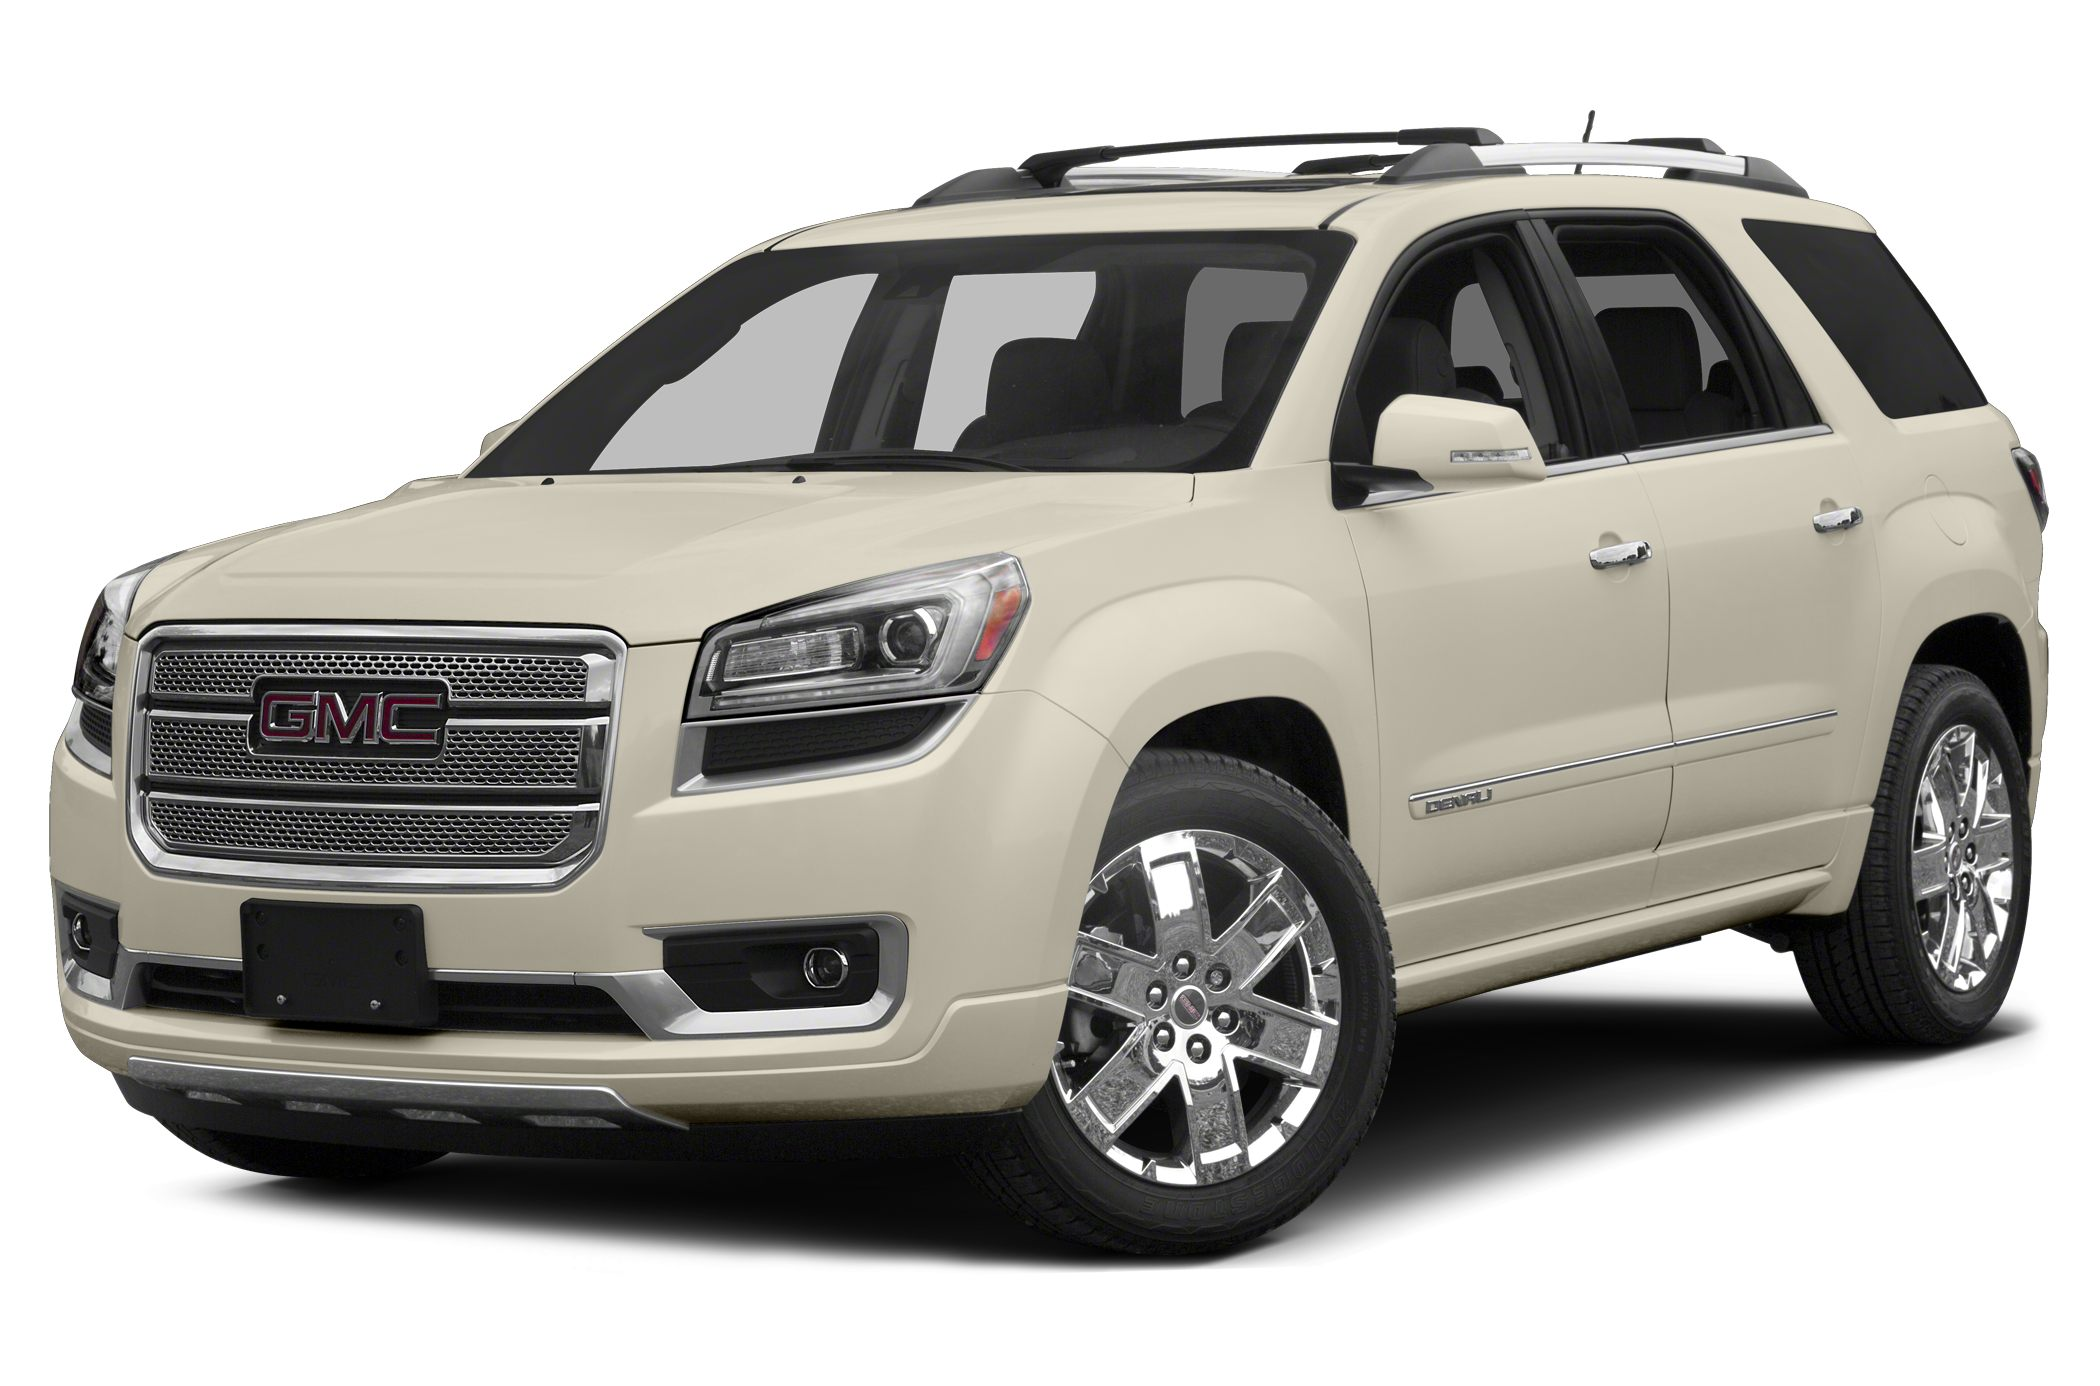 2013 GMC Acadia Denali ITS OUR 50TH ANNIVERSARY HERE AT MARTYS AND TO CELEBRATE WERE OFFERING THE